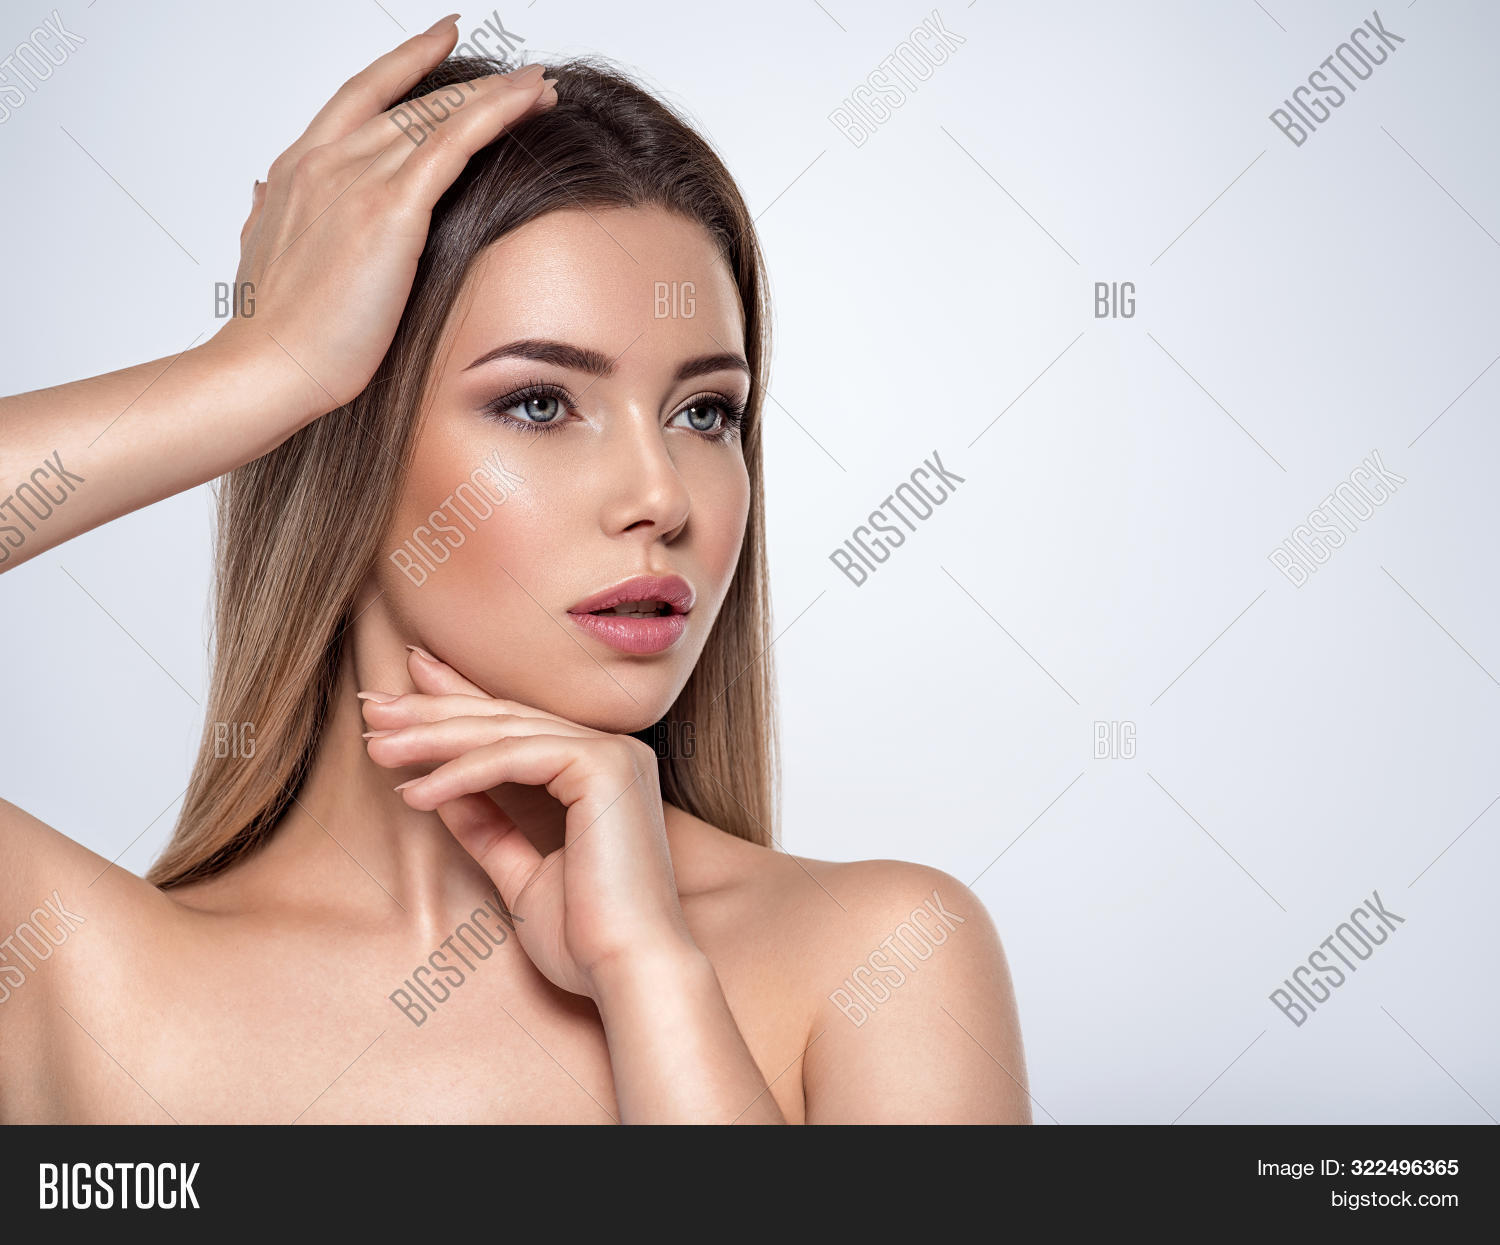 adult,attractive,beautiful,beauty,blue eyes,brunette,care,caucasian,clean,eyes,face,female,fresh,girl,hand,health,isolated,looking away,looking side,model,one,pamper,pampering,portrait,pose,posing,pretty,skin,skin care,smokey,smokey eyes,smokey makeup,studio,touch,white,white background,woman,young